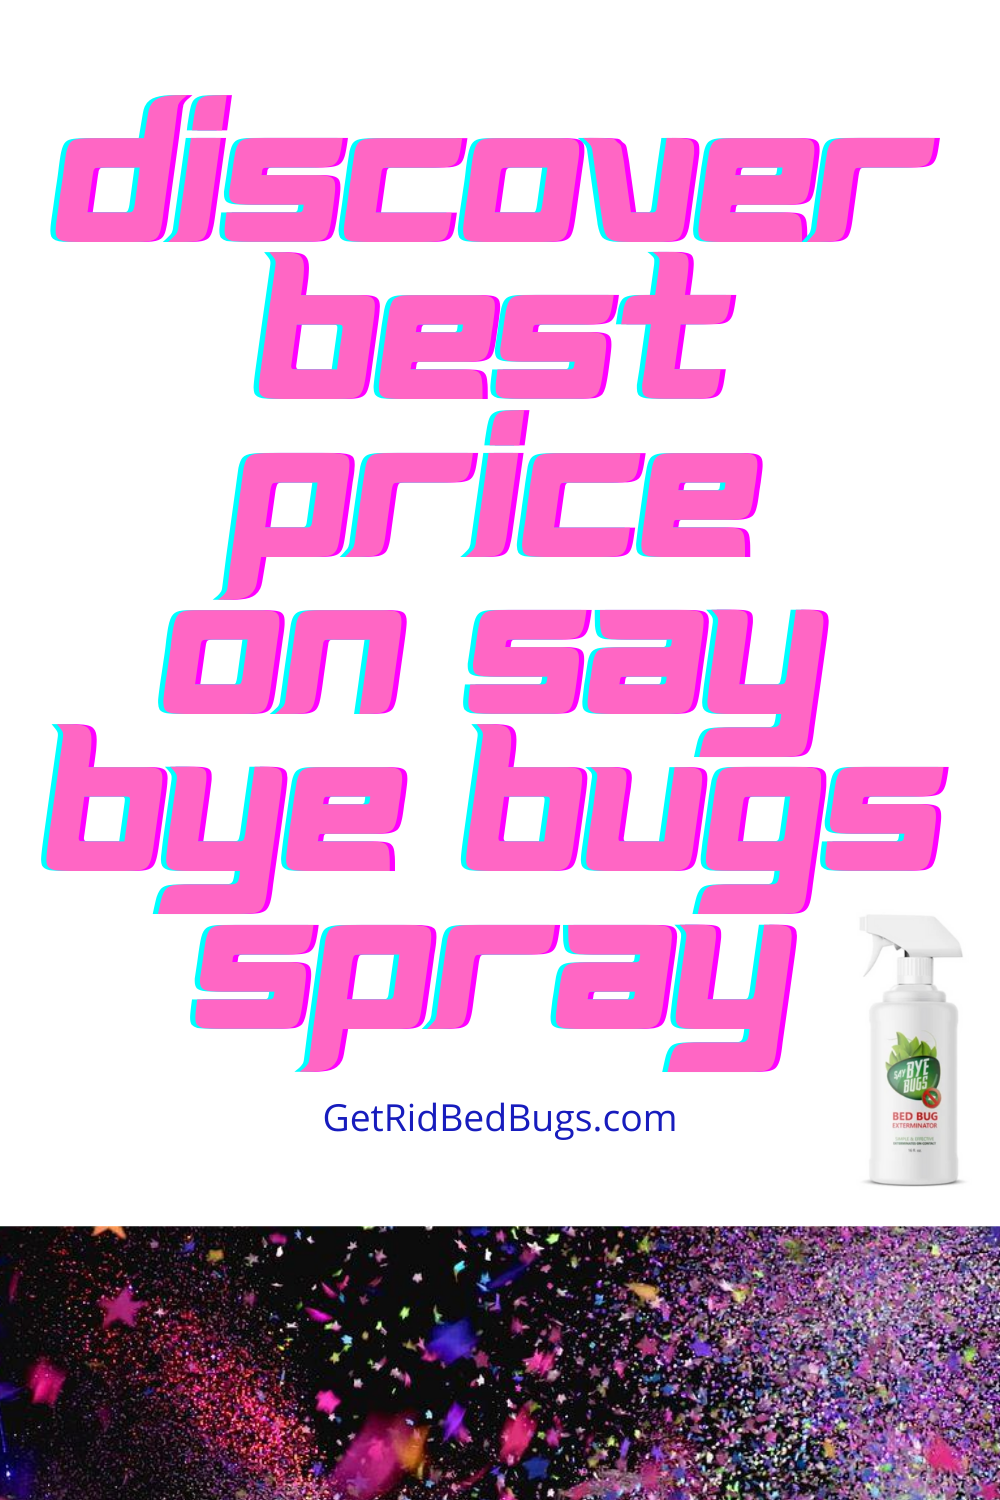 Where Can You Buy Say Bye Bugs? Get Best Price and My